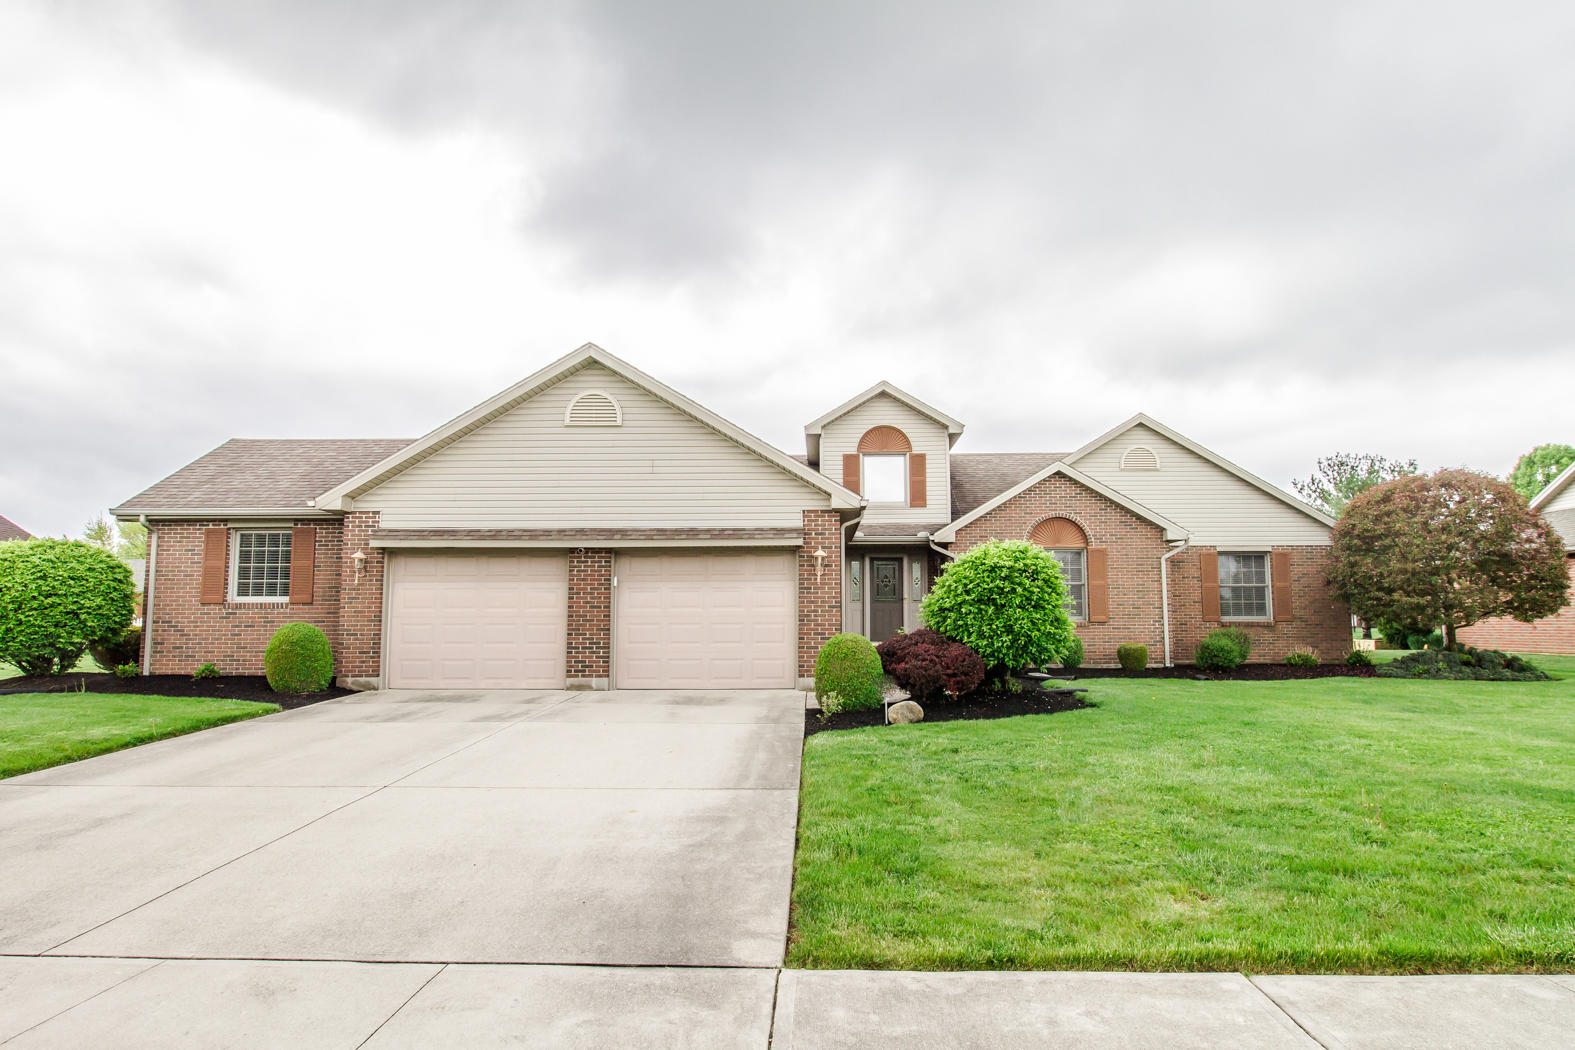 304 Driftwood Drive Property Photo - Greenville, OH real estate listing